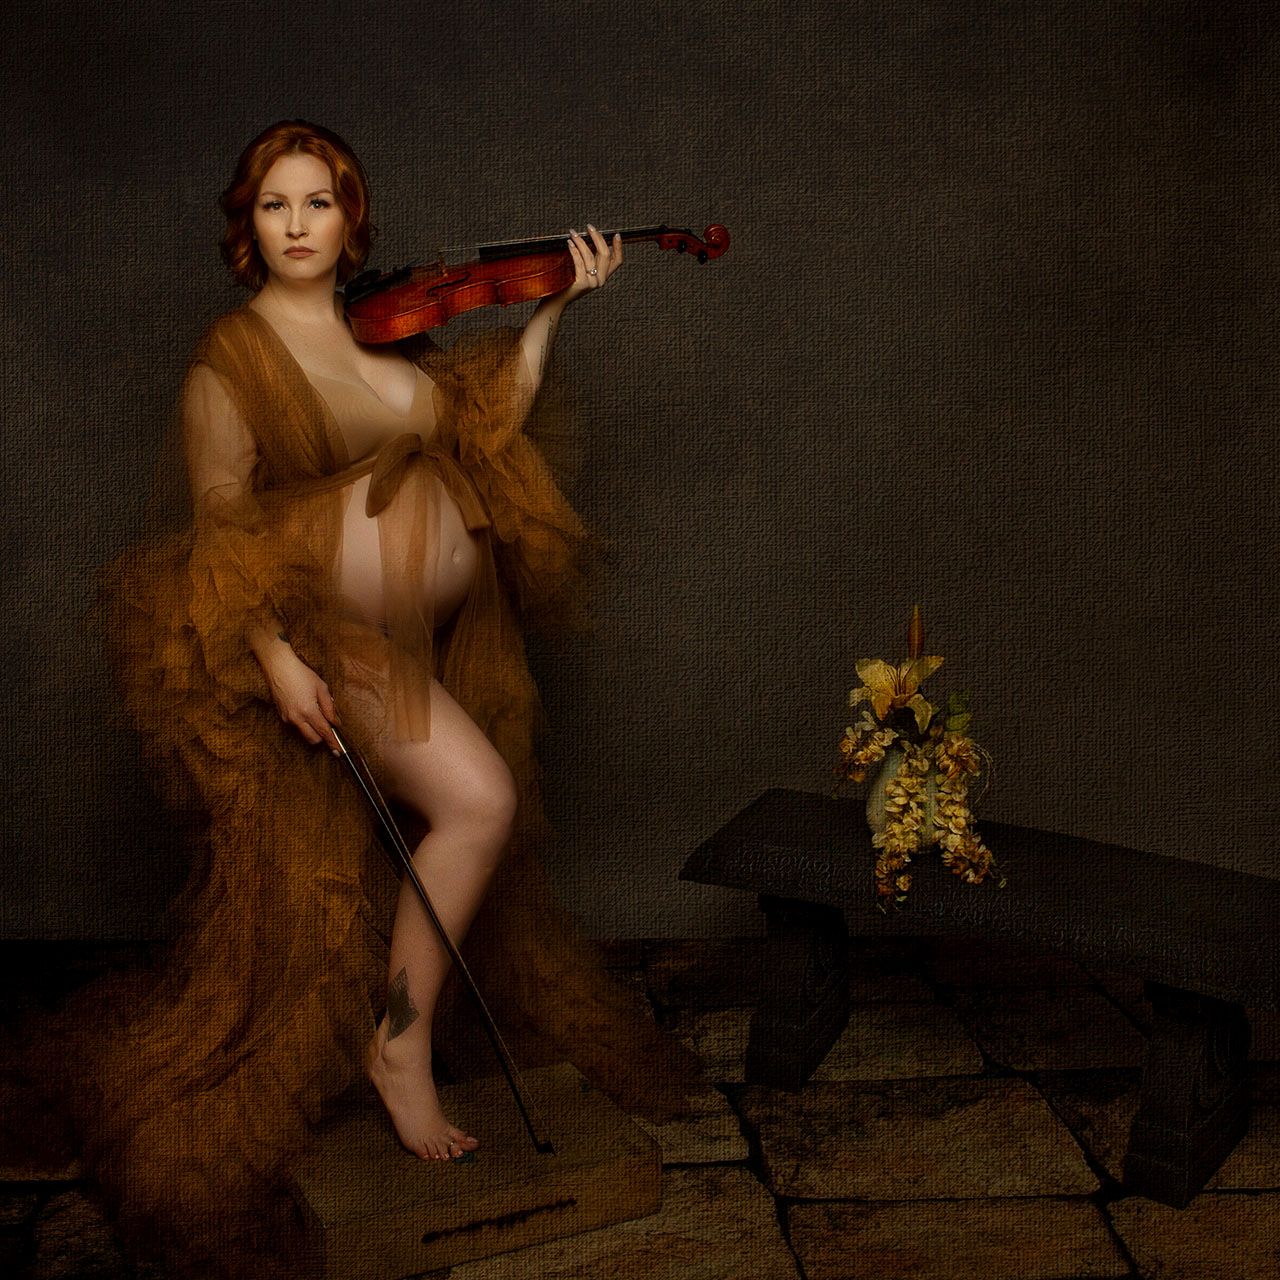 maternity-photography portrait of a women in a robe holding a violin by Birth and Beauty